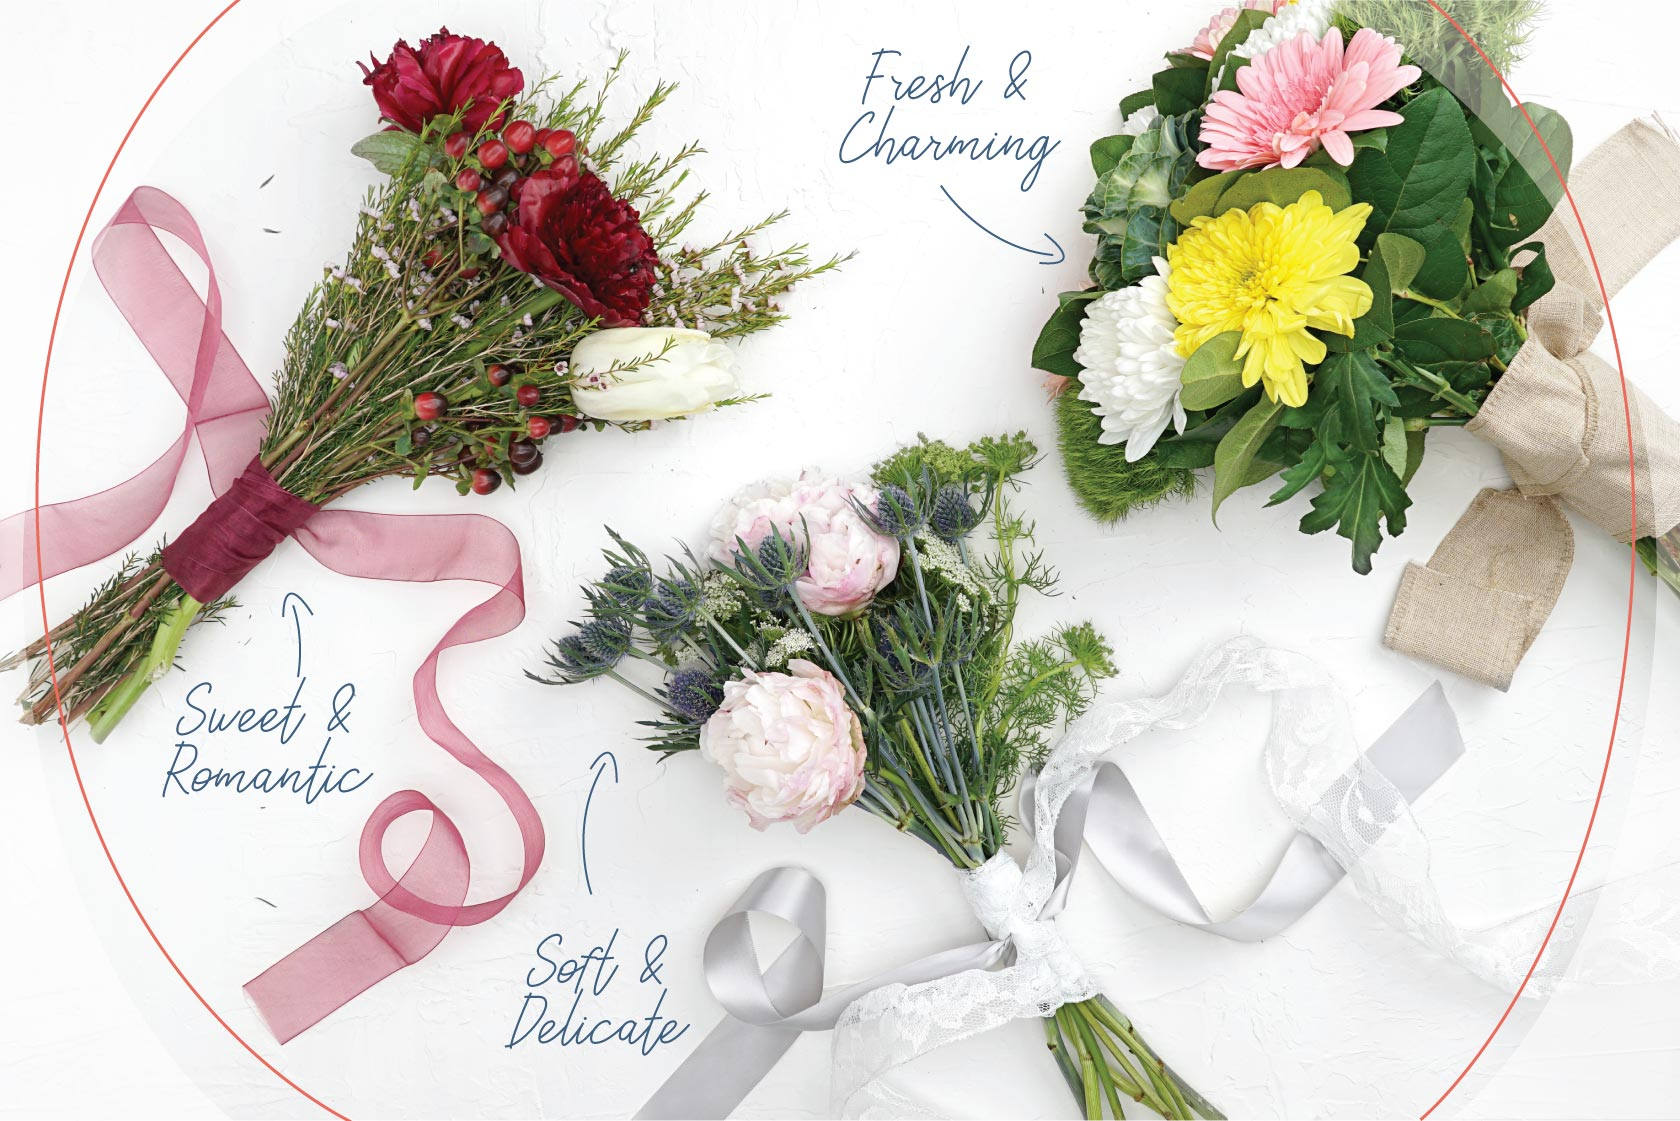 Diy tutorial how to create a diy wedding bouquet in 6 easy steps create a diy wedding bouquet in just six steps izmirmasajfo